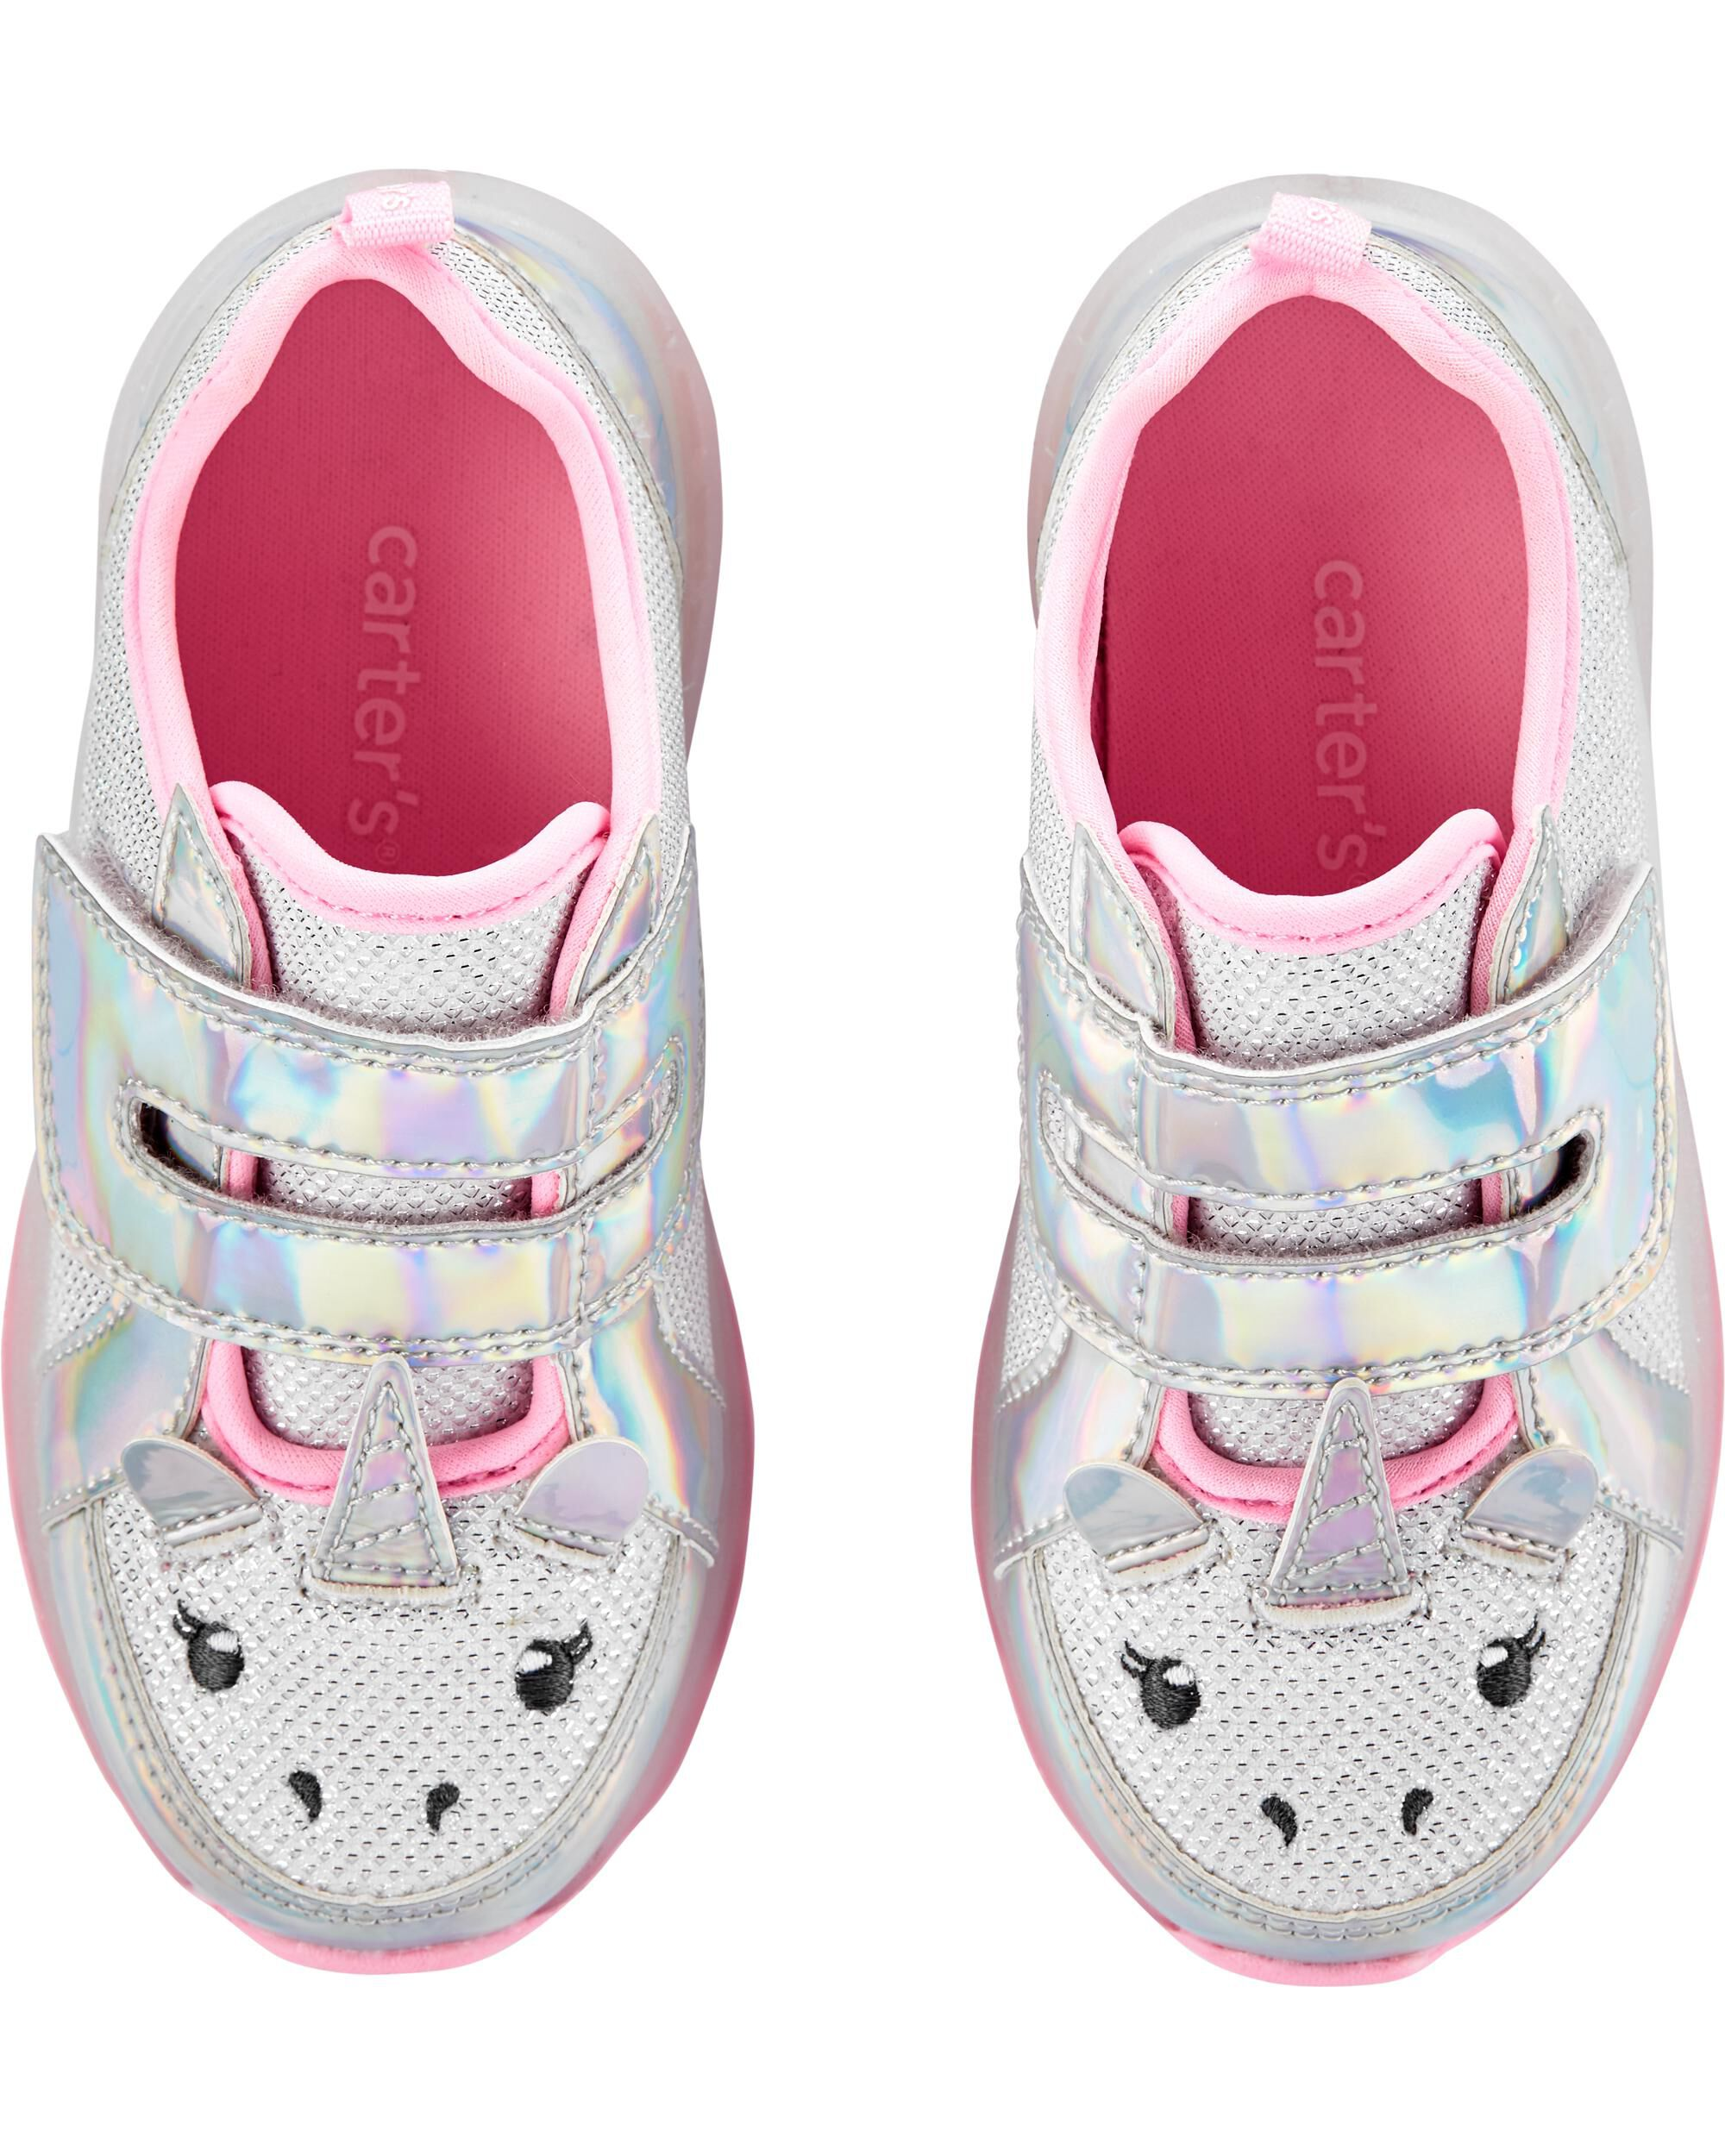 Unicorn Light-Up Sneakers   skiphop